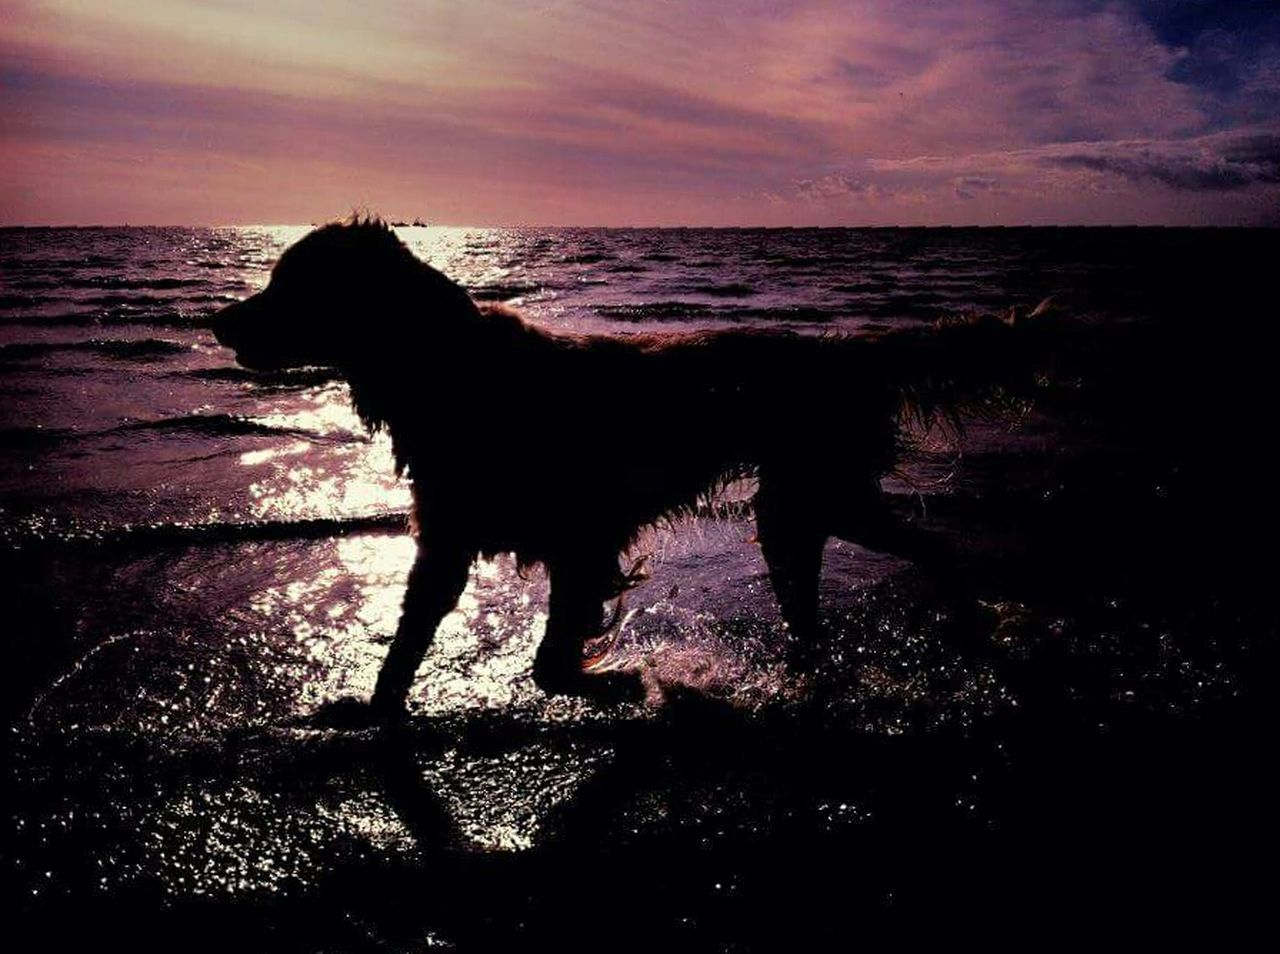 Sunset Sunset Silhouettes Sunset Silhouette Sunset Dog Walk Sunset Dogs Dog Dogs Dog Love Dog❤ Dogslife Dogs Of EyeEm Dogs Life Sweet Beach Dog On The Beach Dog Beach Dog Bath Hund Hunde Hunderunde Sonnenuntergang Goldenretriever Golden Retriever